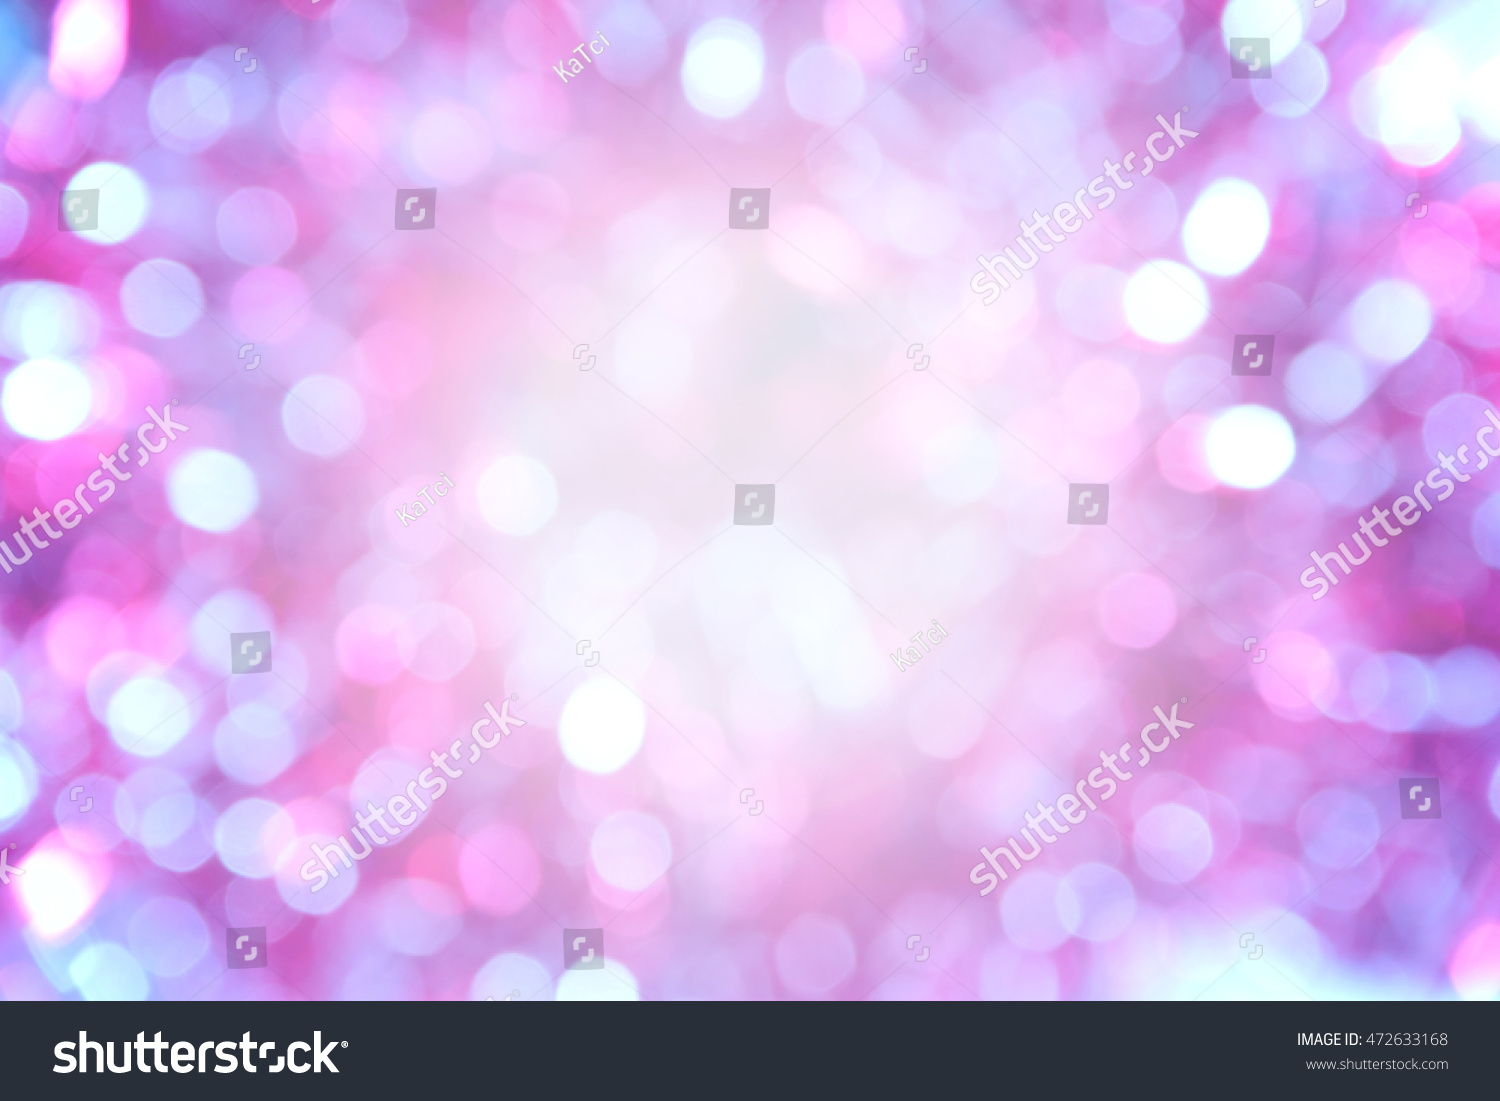 Blurred Pastel Color Lights Bokeh Bright Stock Photo Edit Now - Color-lila-pastel